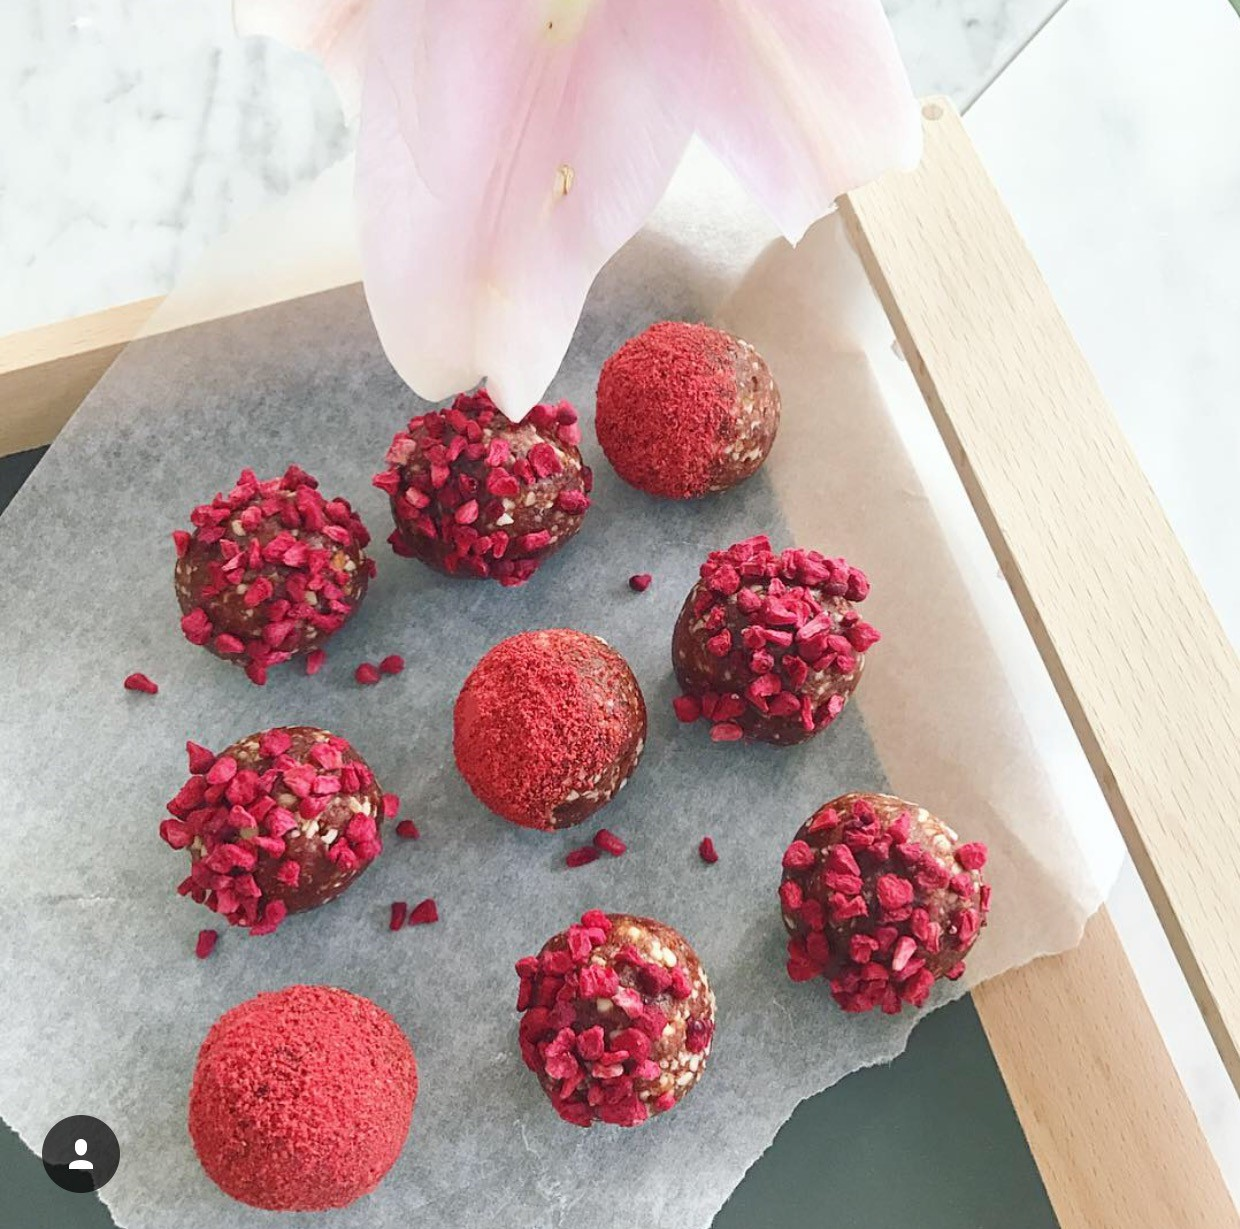 Ingredients:  1 cup almonds  1 cup medjool dates 1 tsp vanilla essence  1 tbsp raspberry powder   optional for rolling: freeze dried raspberries, additional raspberry powder.  Method: 1. Place the almonds into the food processor and blitz until slightly broken down. 2. Add in the dates, vanilla and raspberry powder and blend until well combined and a dough texture is formed. If your dates are not sticky enough you may need to add in a few more. 3. Remove the dough from the food processor and roll into balls. Further roll in freeze dried raspberries or raspberry powder. 4. Store in the fridge until ready to eat.